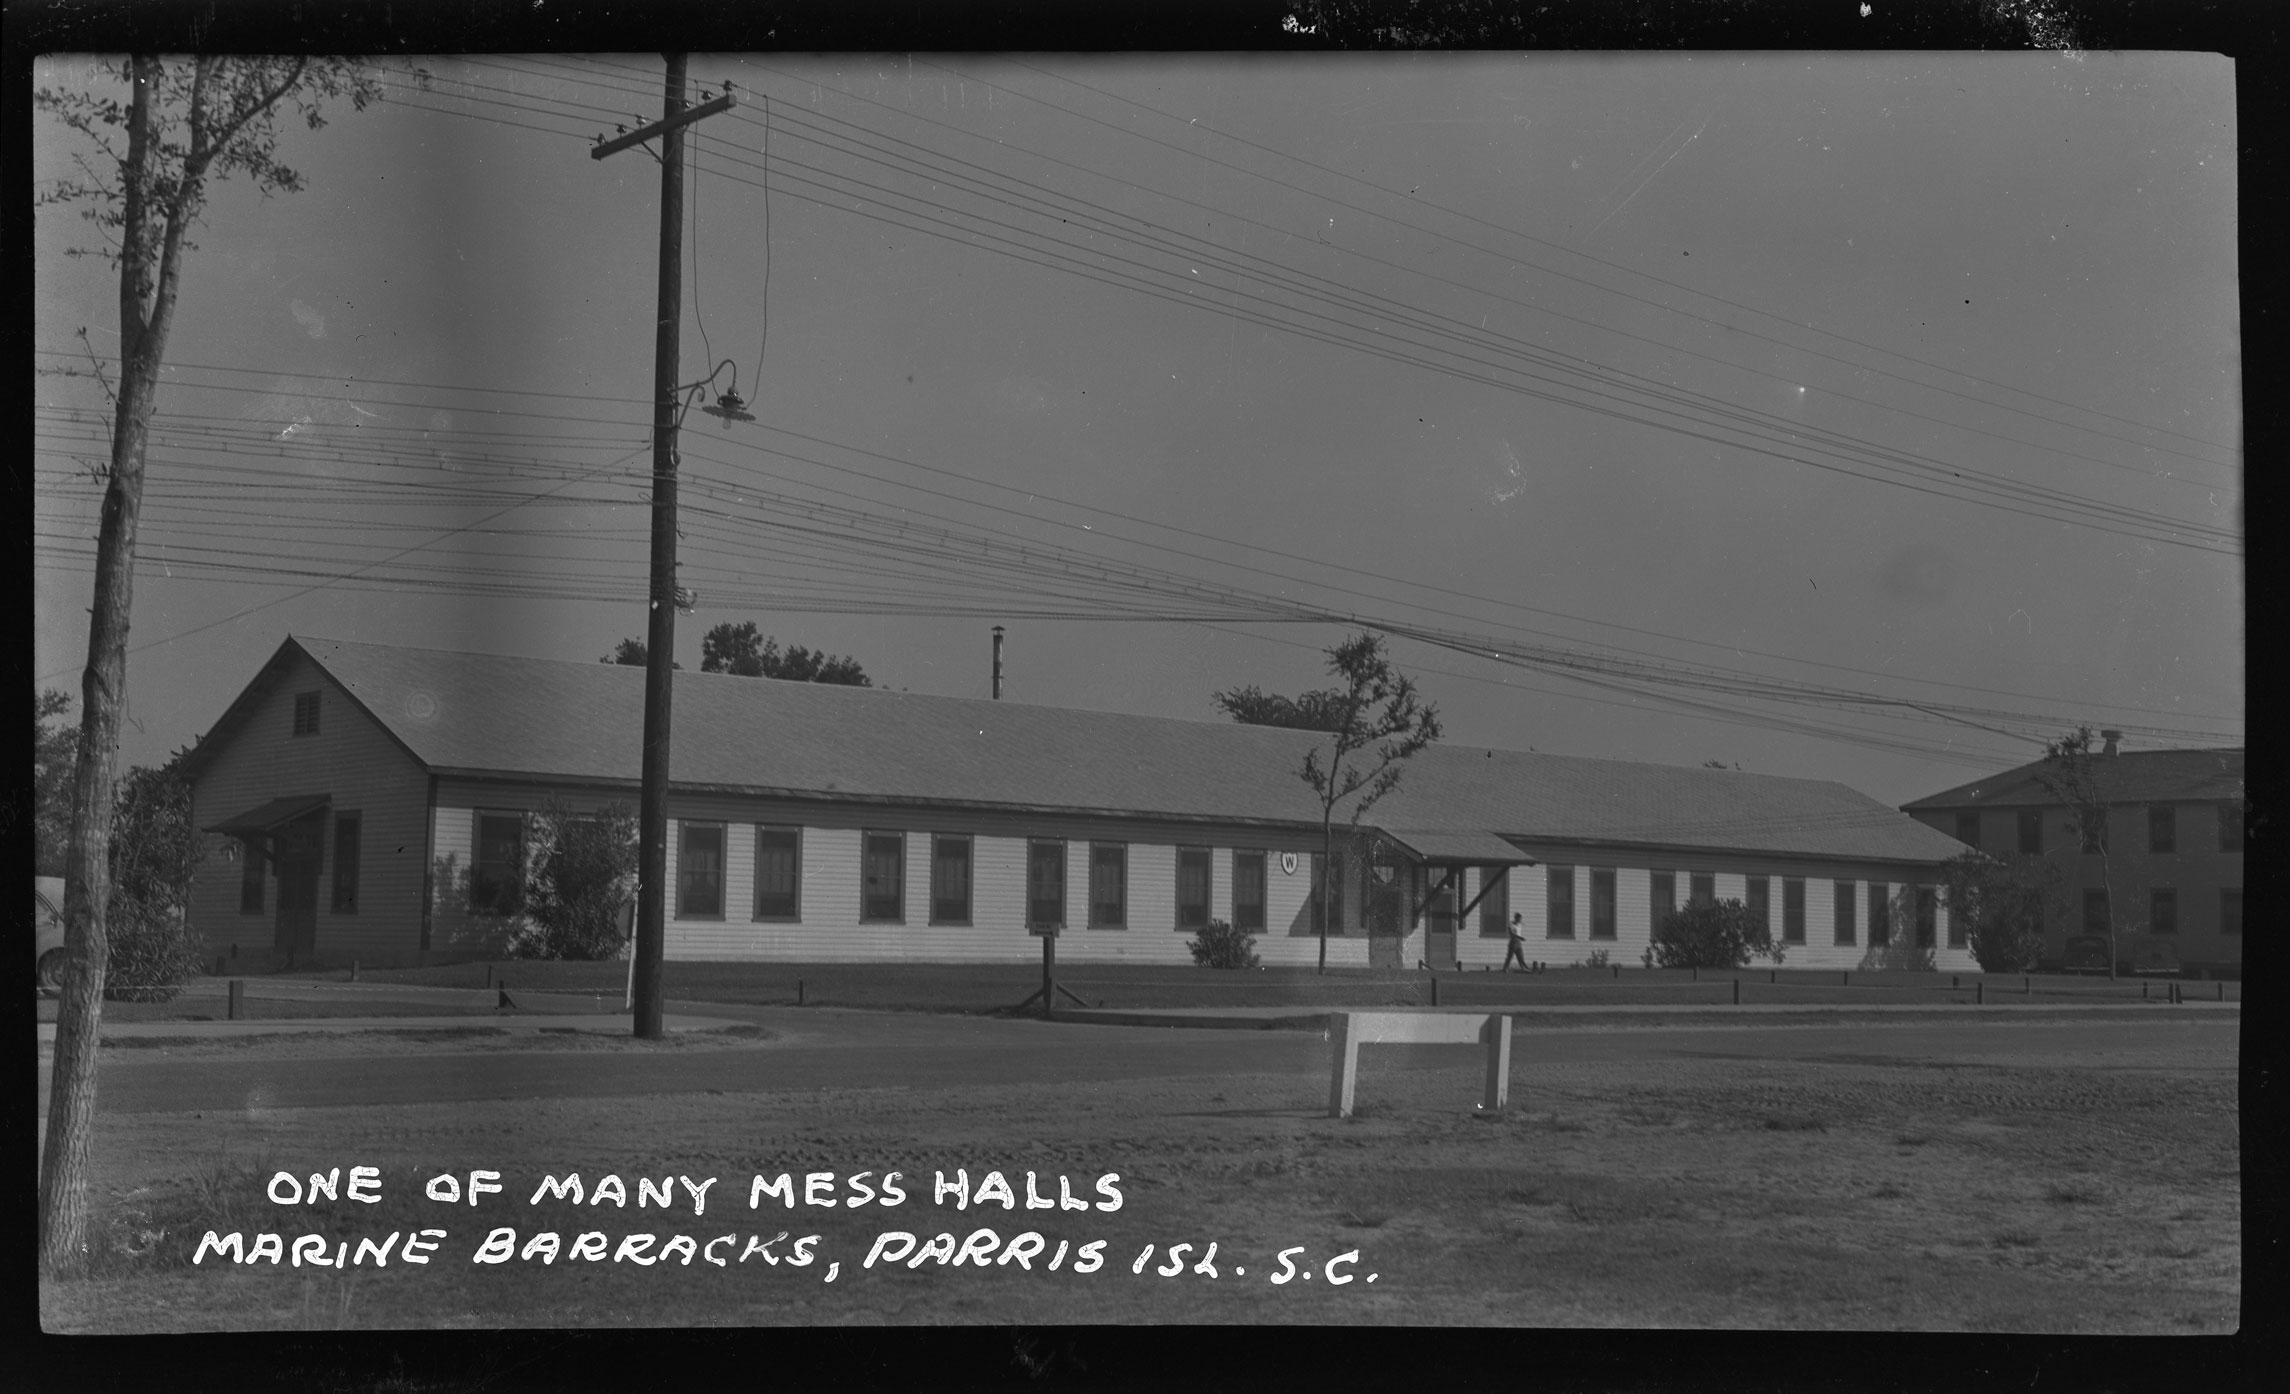 One of Many Mess Halls Marine Barracks Parris Isl. S.C.